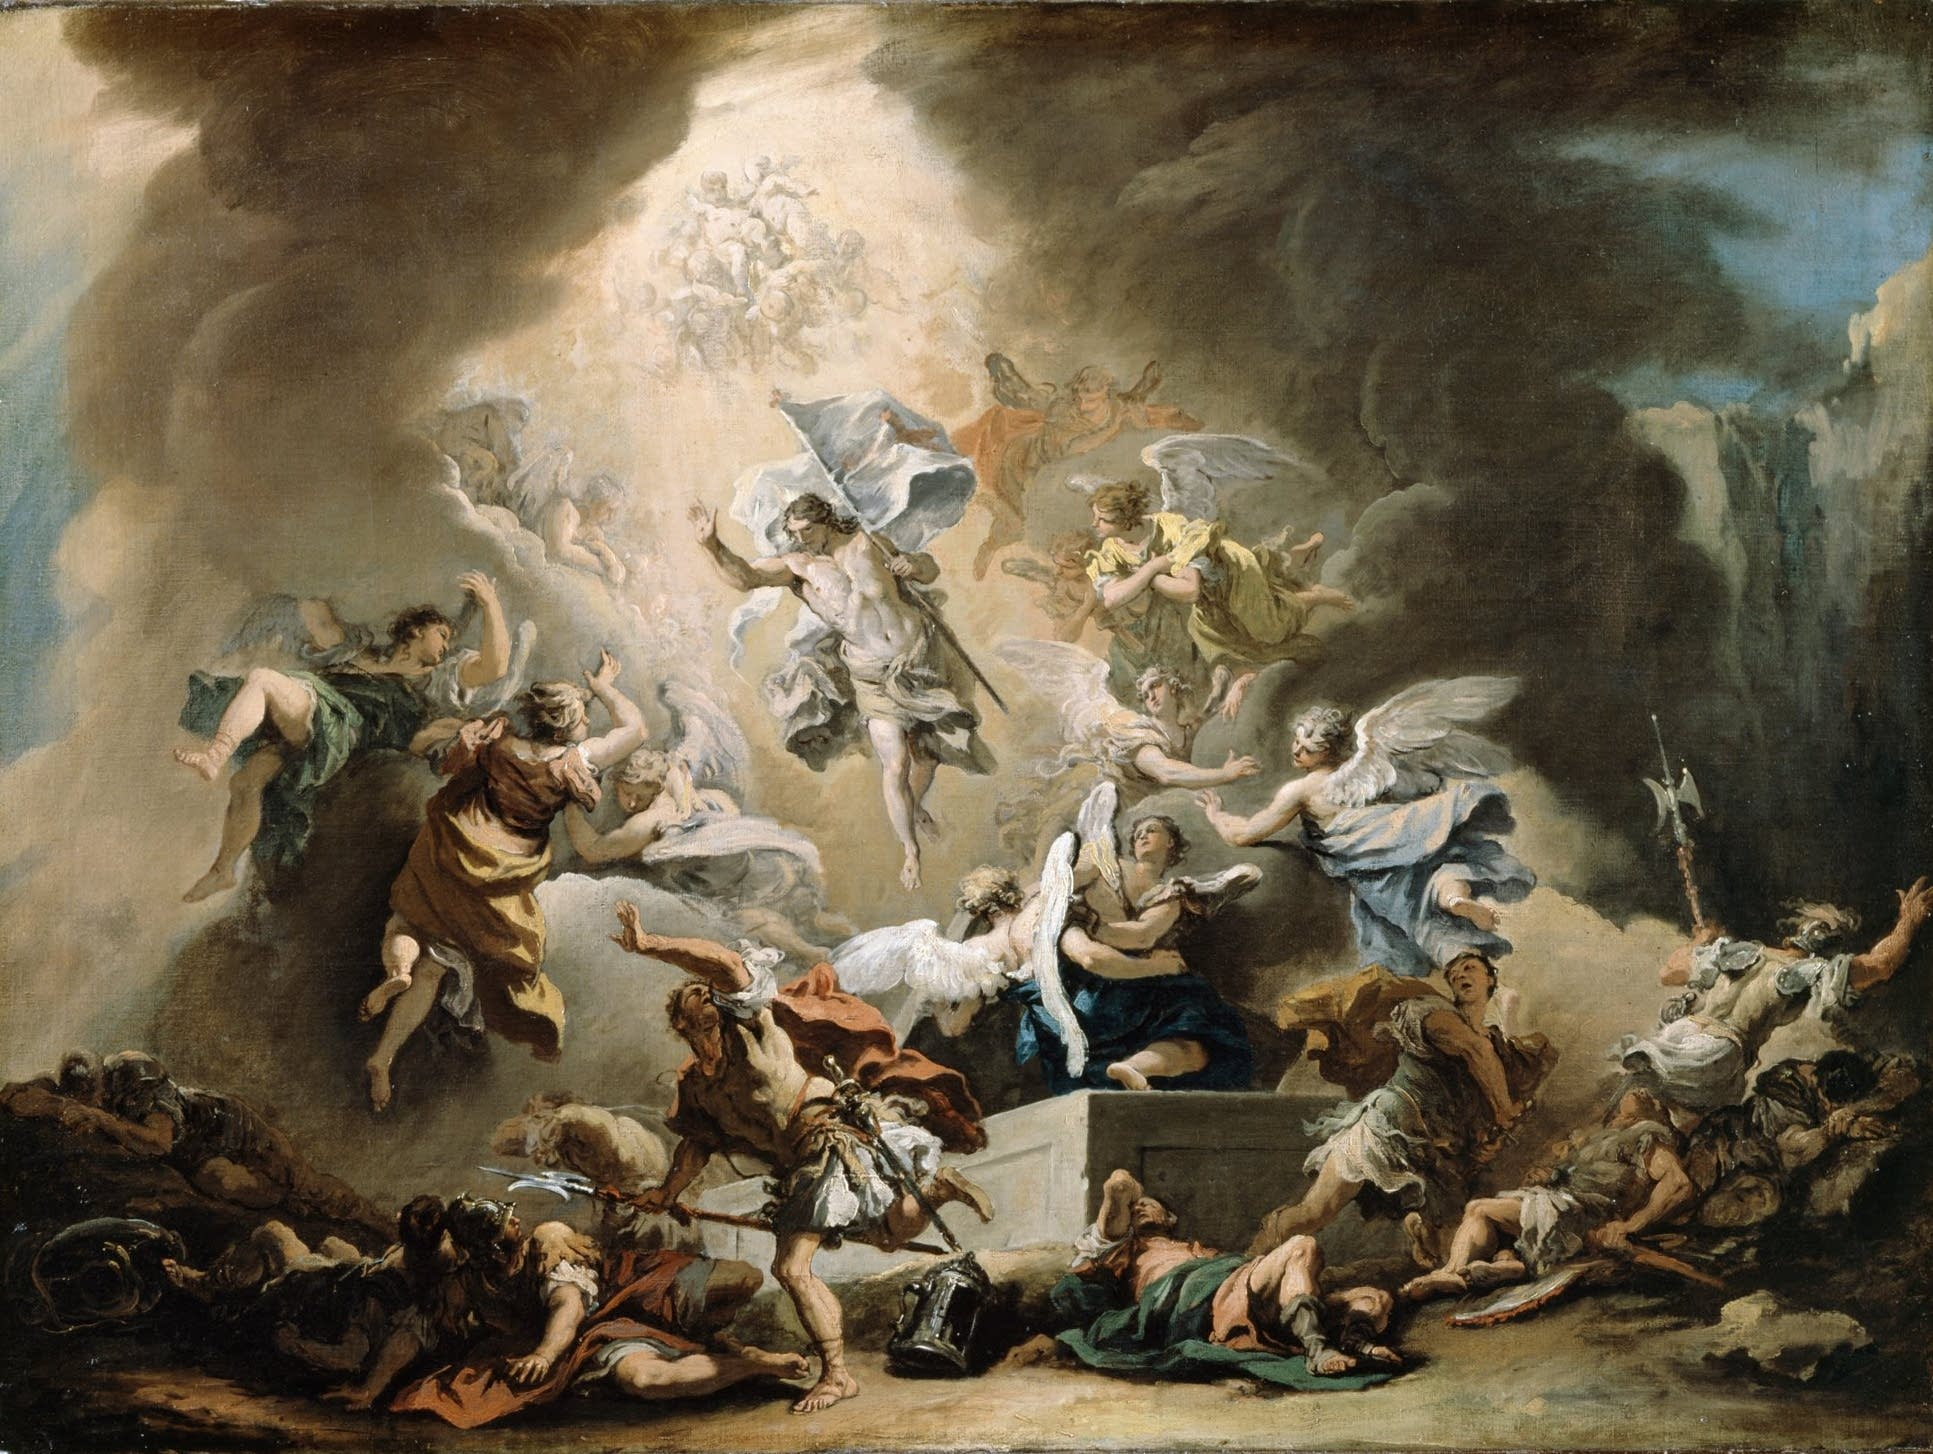 The Resurrection, Ricci Sebastiano